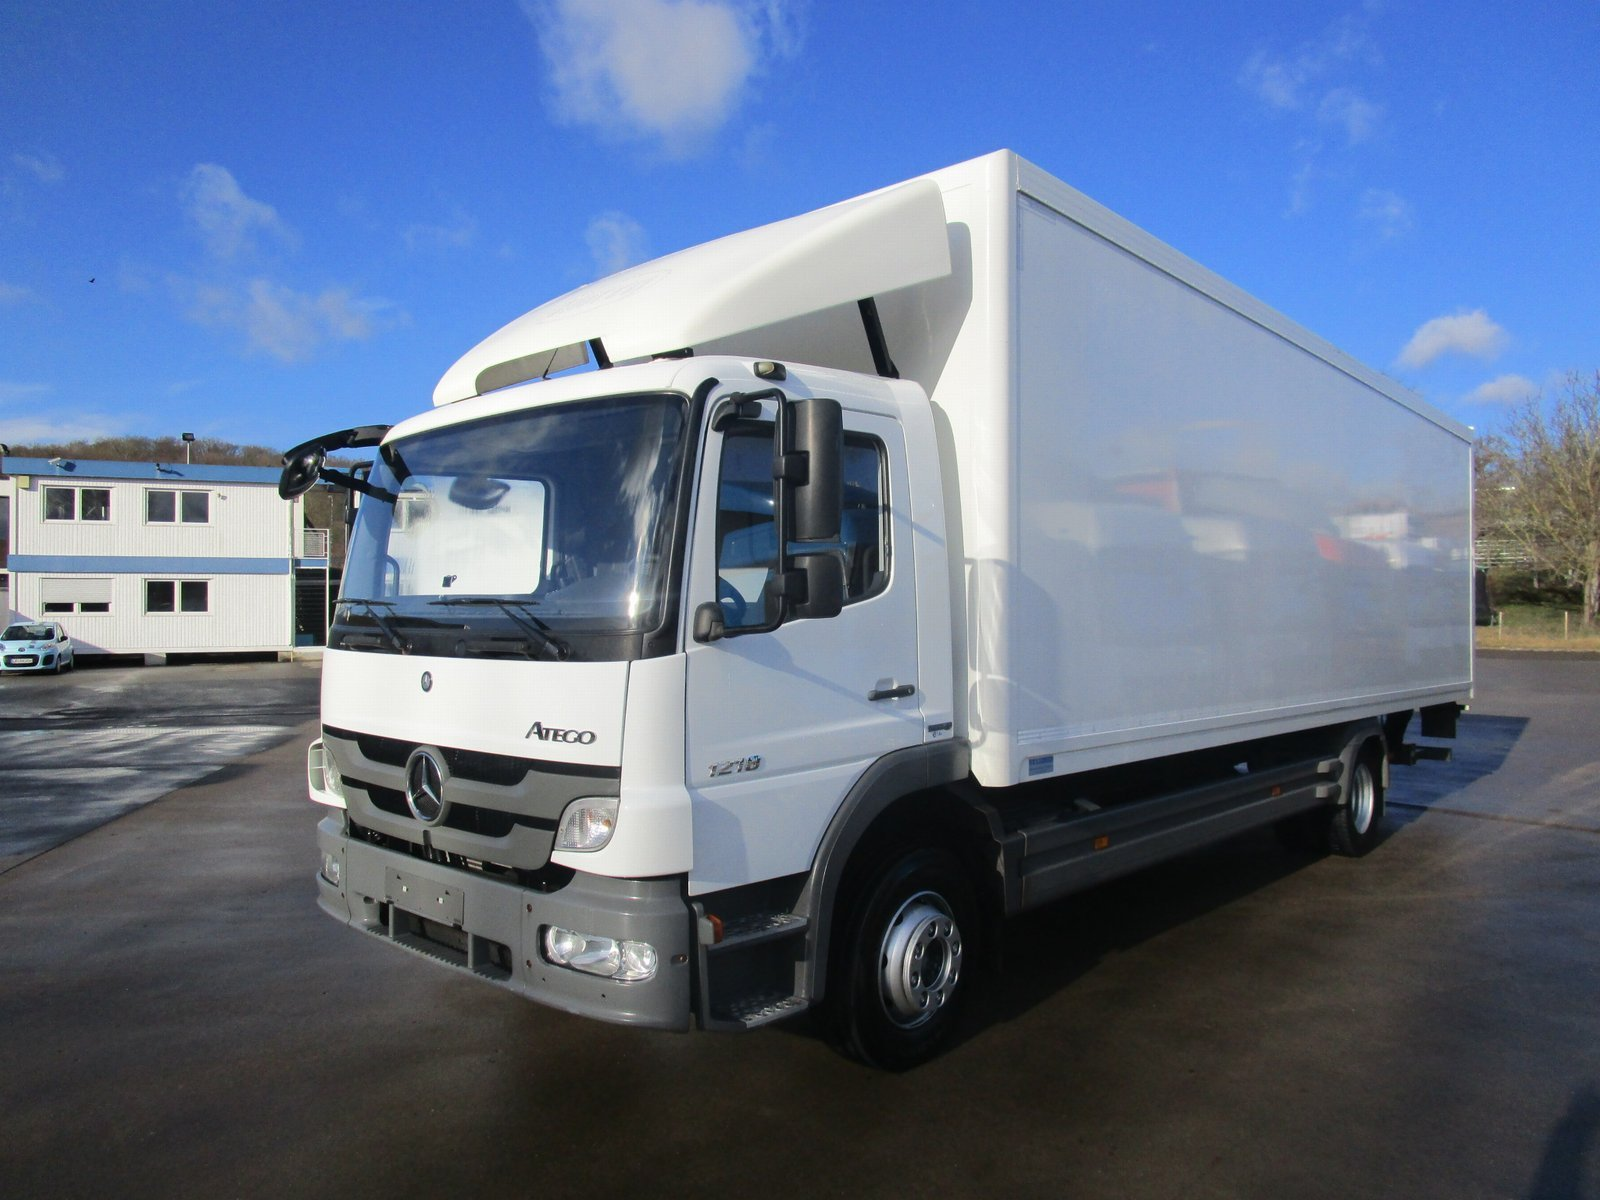 ATEGO III 1218 L Koffer 8,20 m LBW 1,25 to.